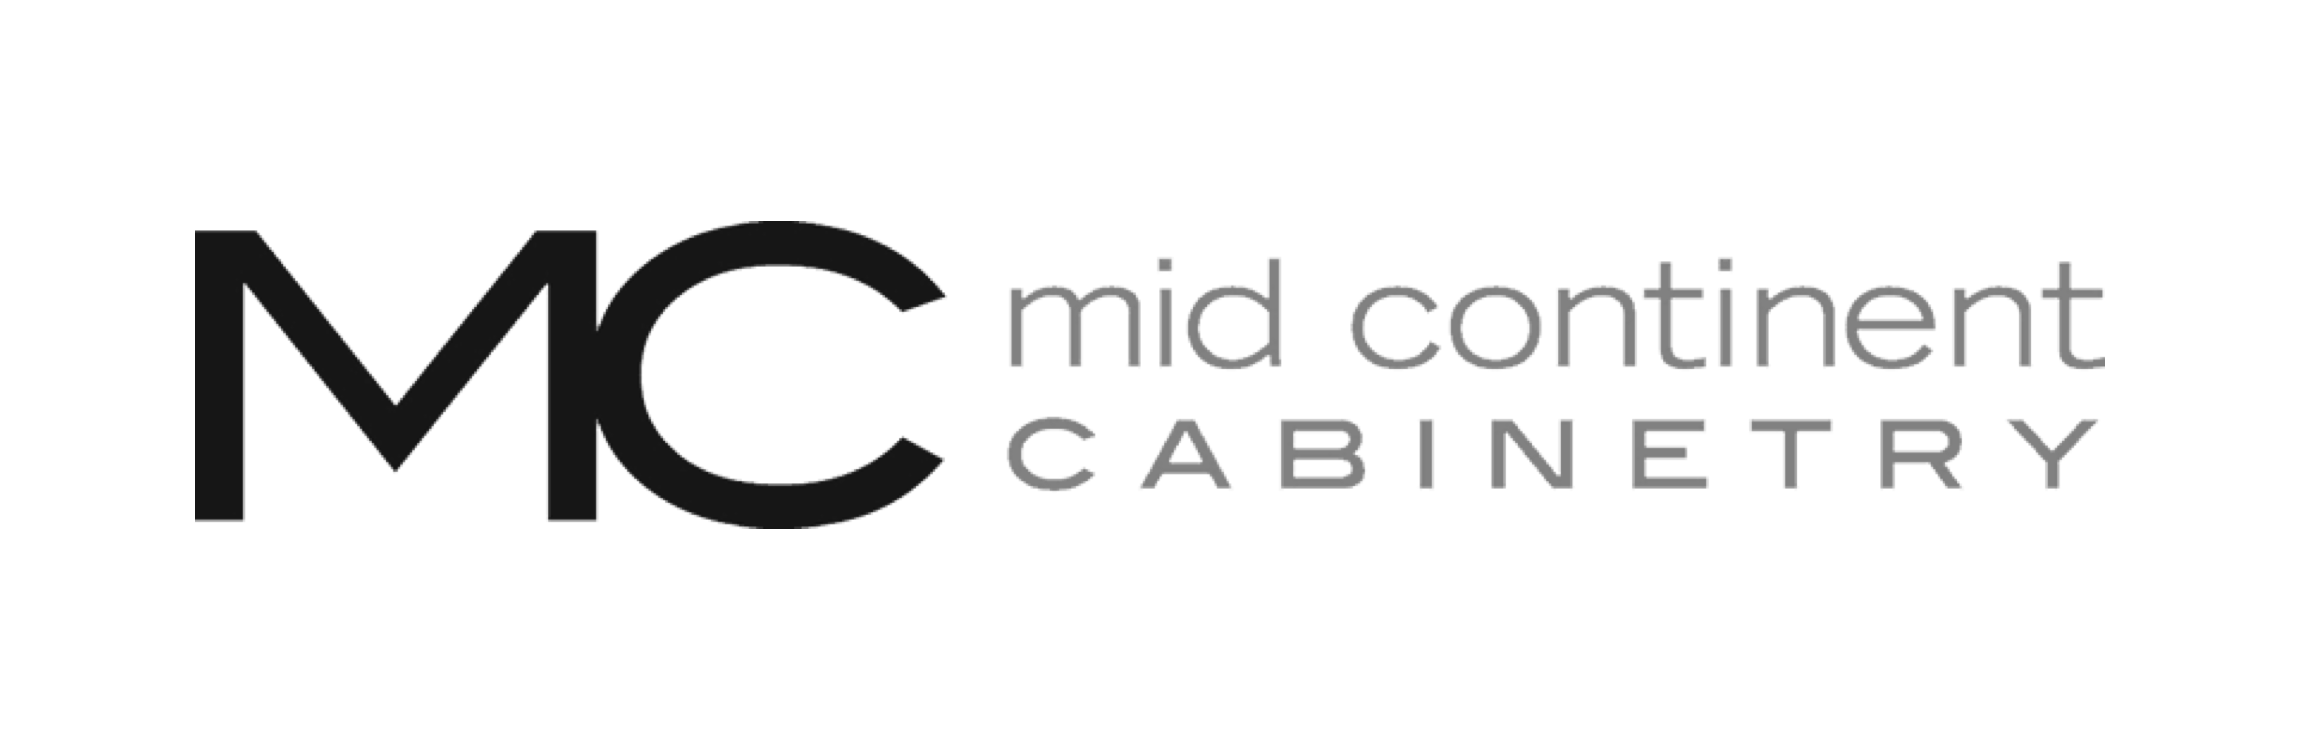 mid continent cabinetry.png